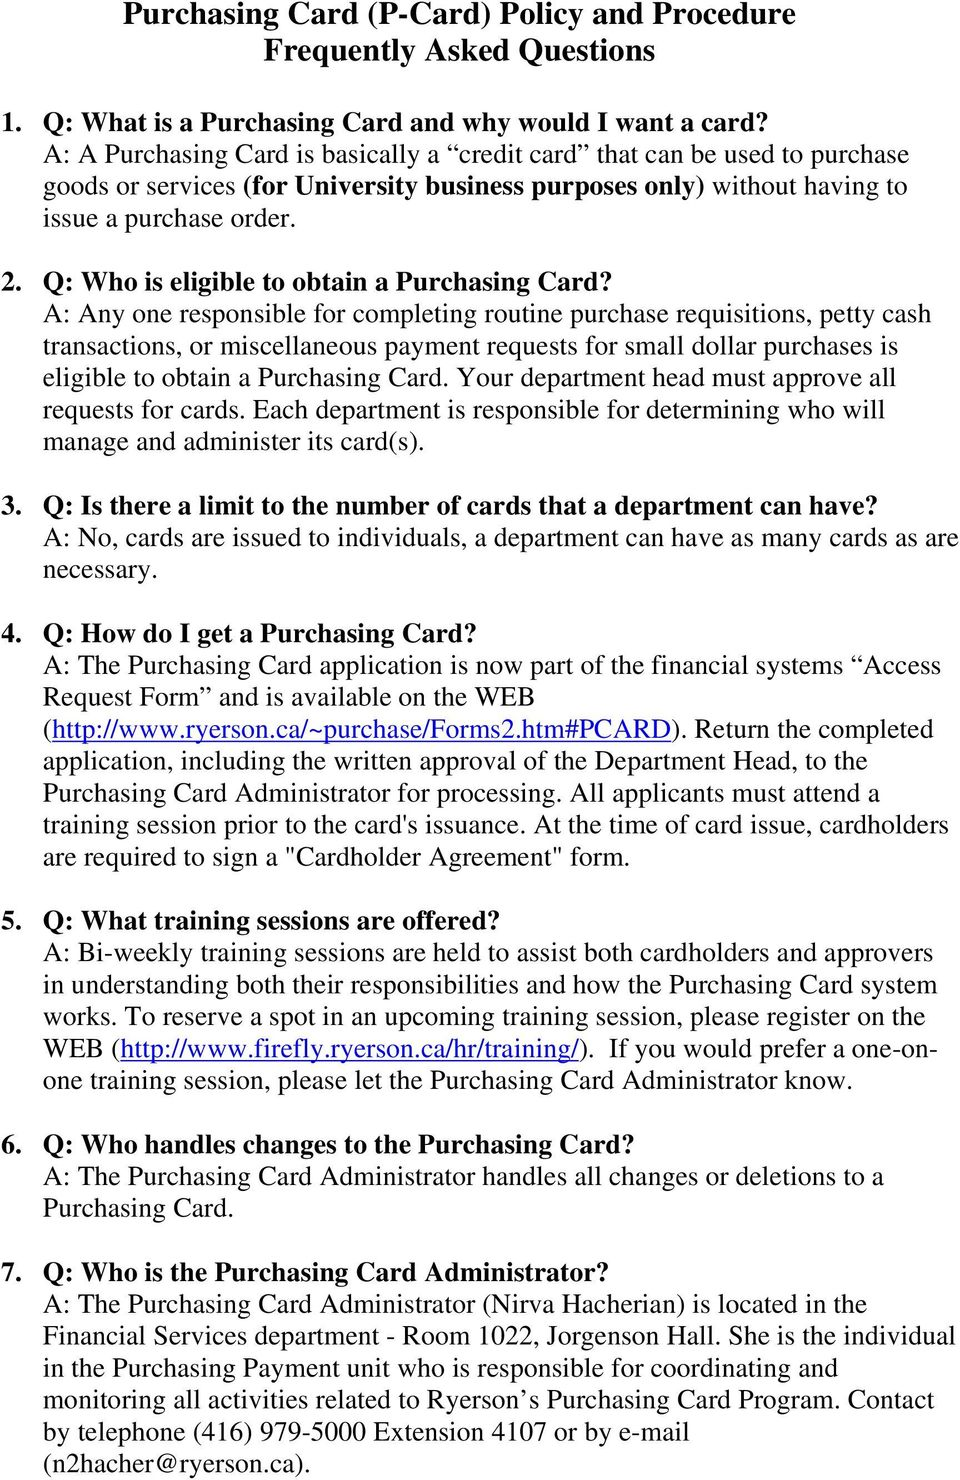 Q: Who is eligible to obtain a Purchasing Card?